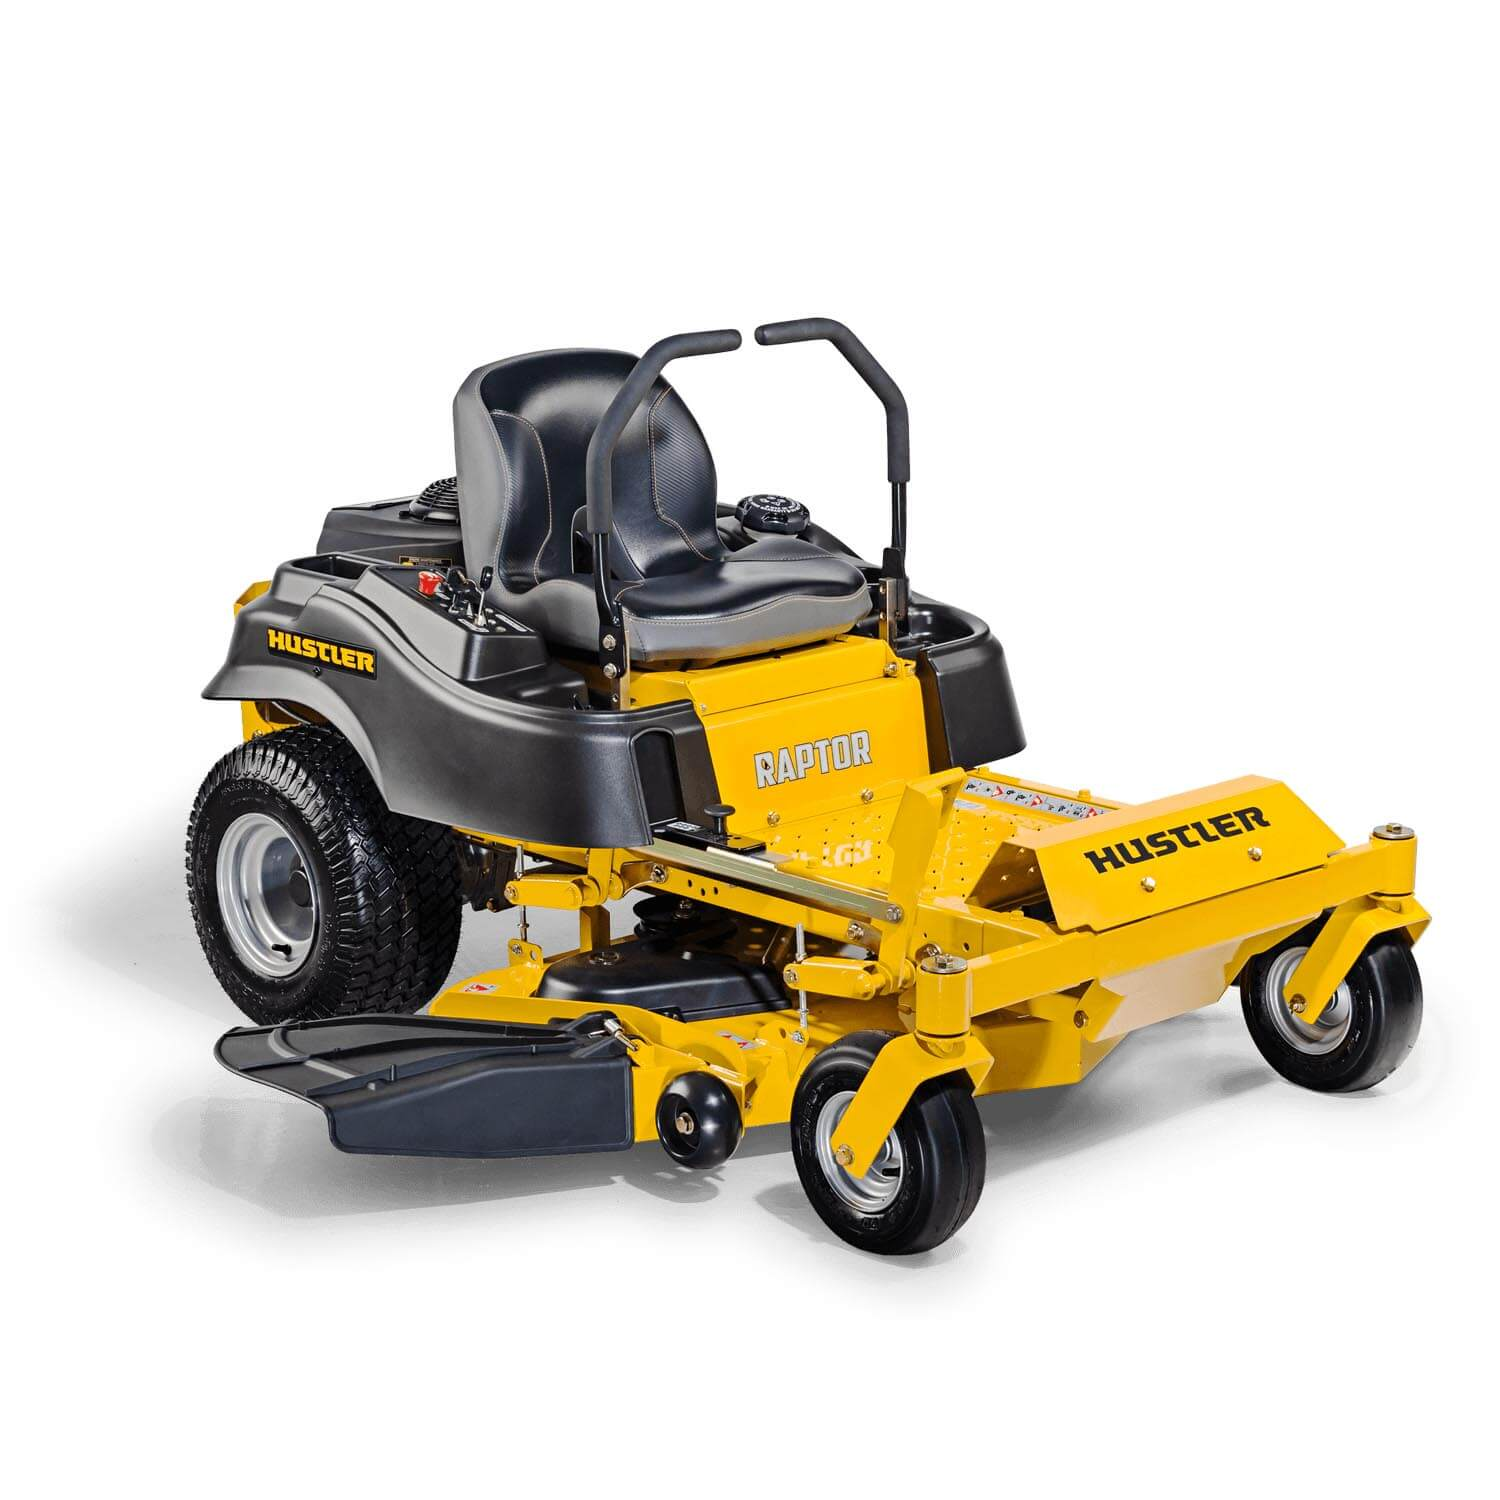 Image of the front three quarters of a yellow Hustler mower